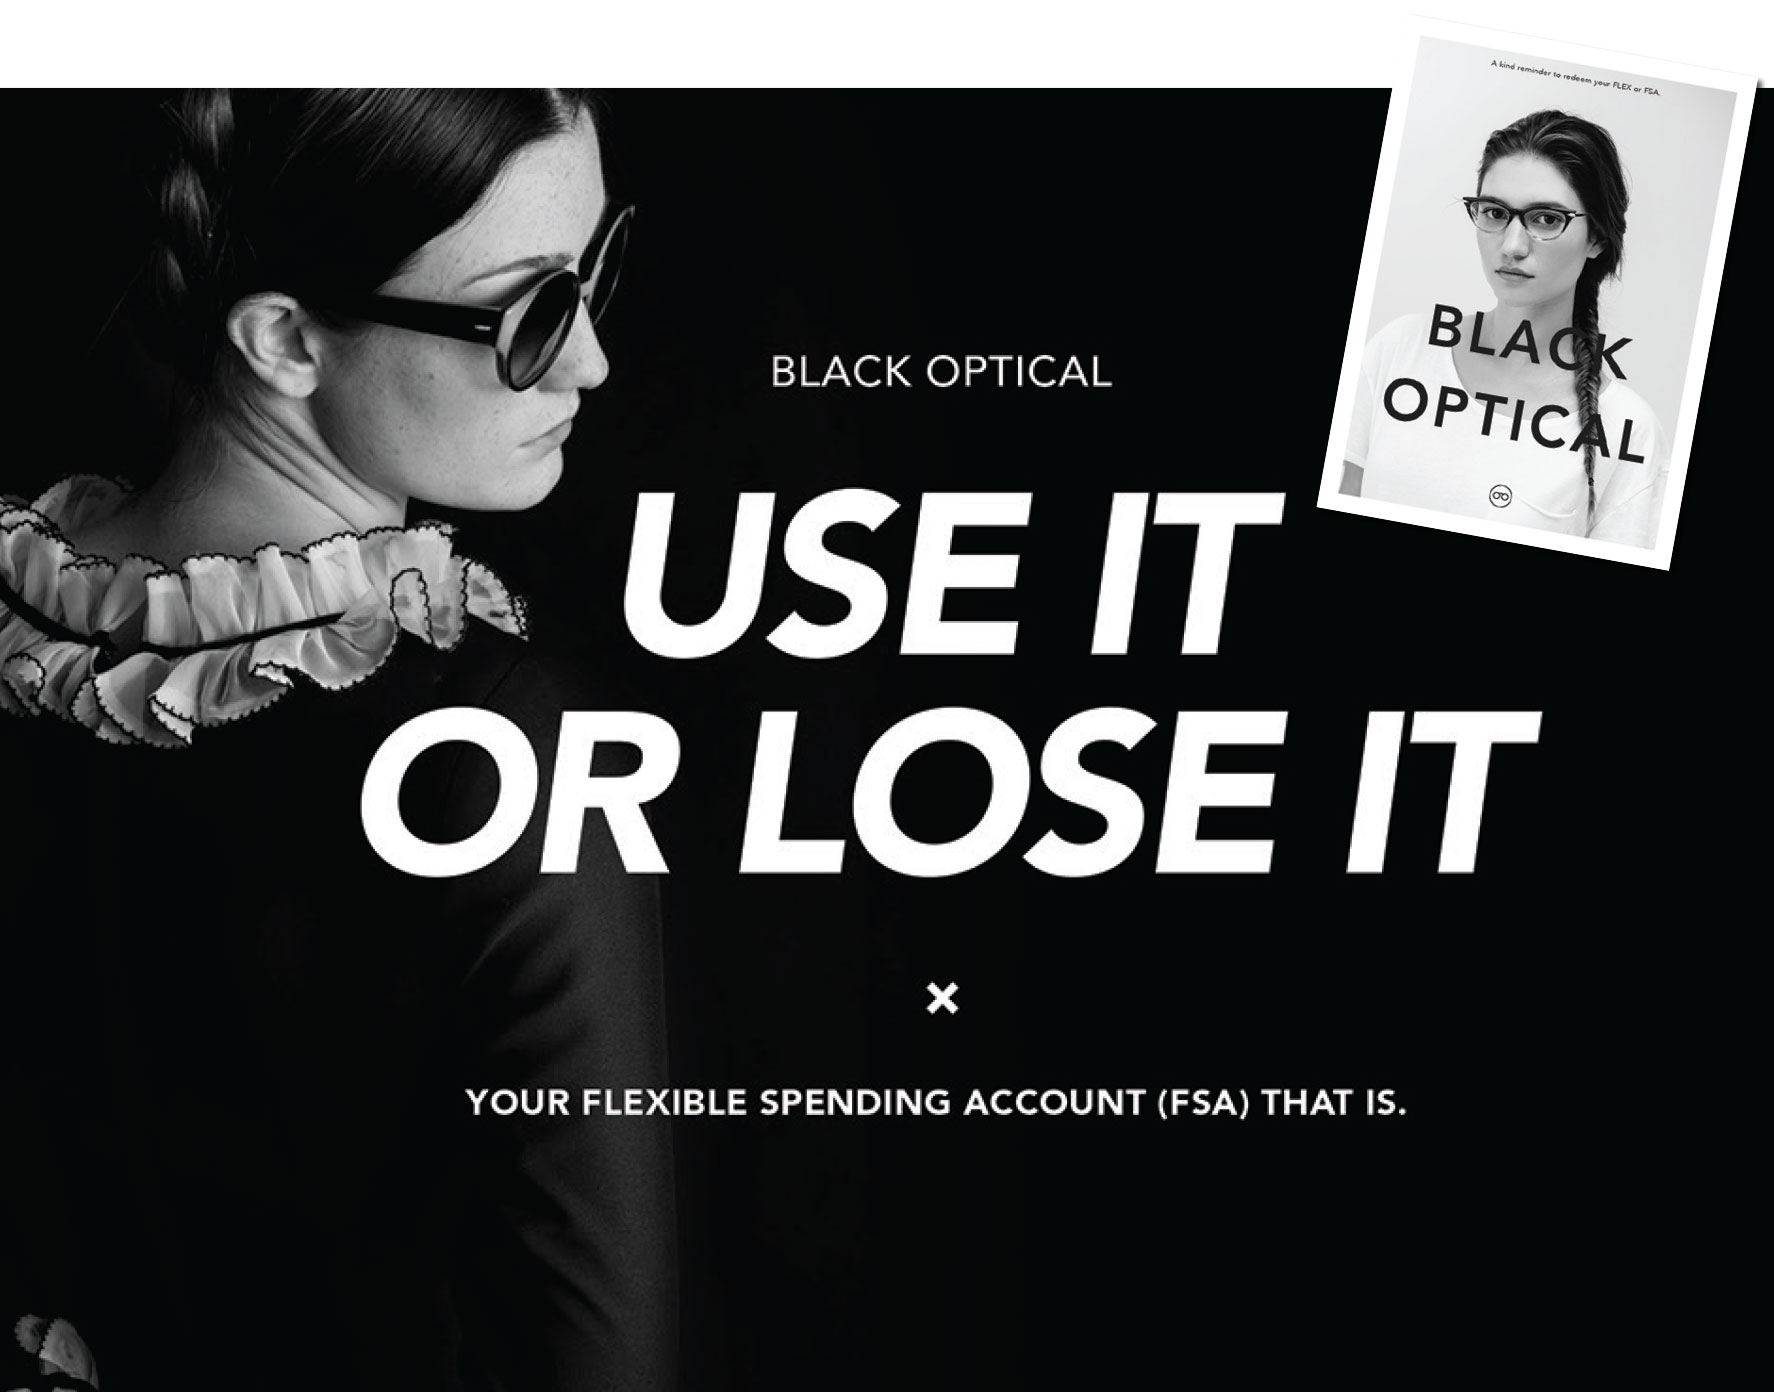 Flex dollar direct mail from Black Optical